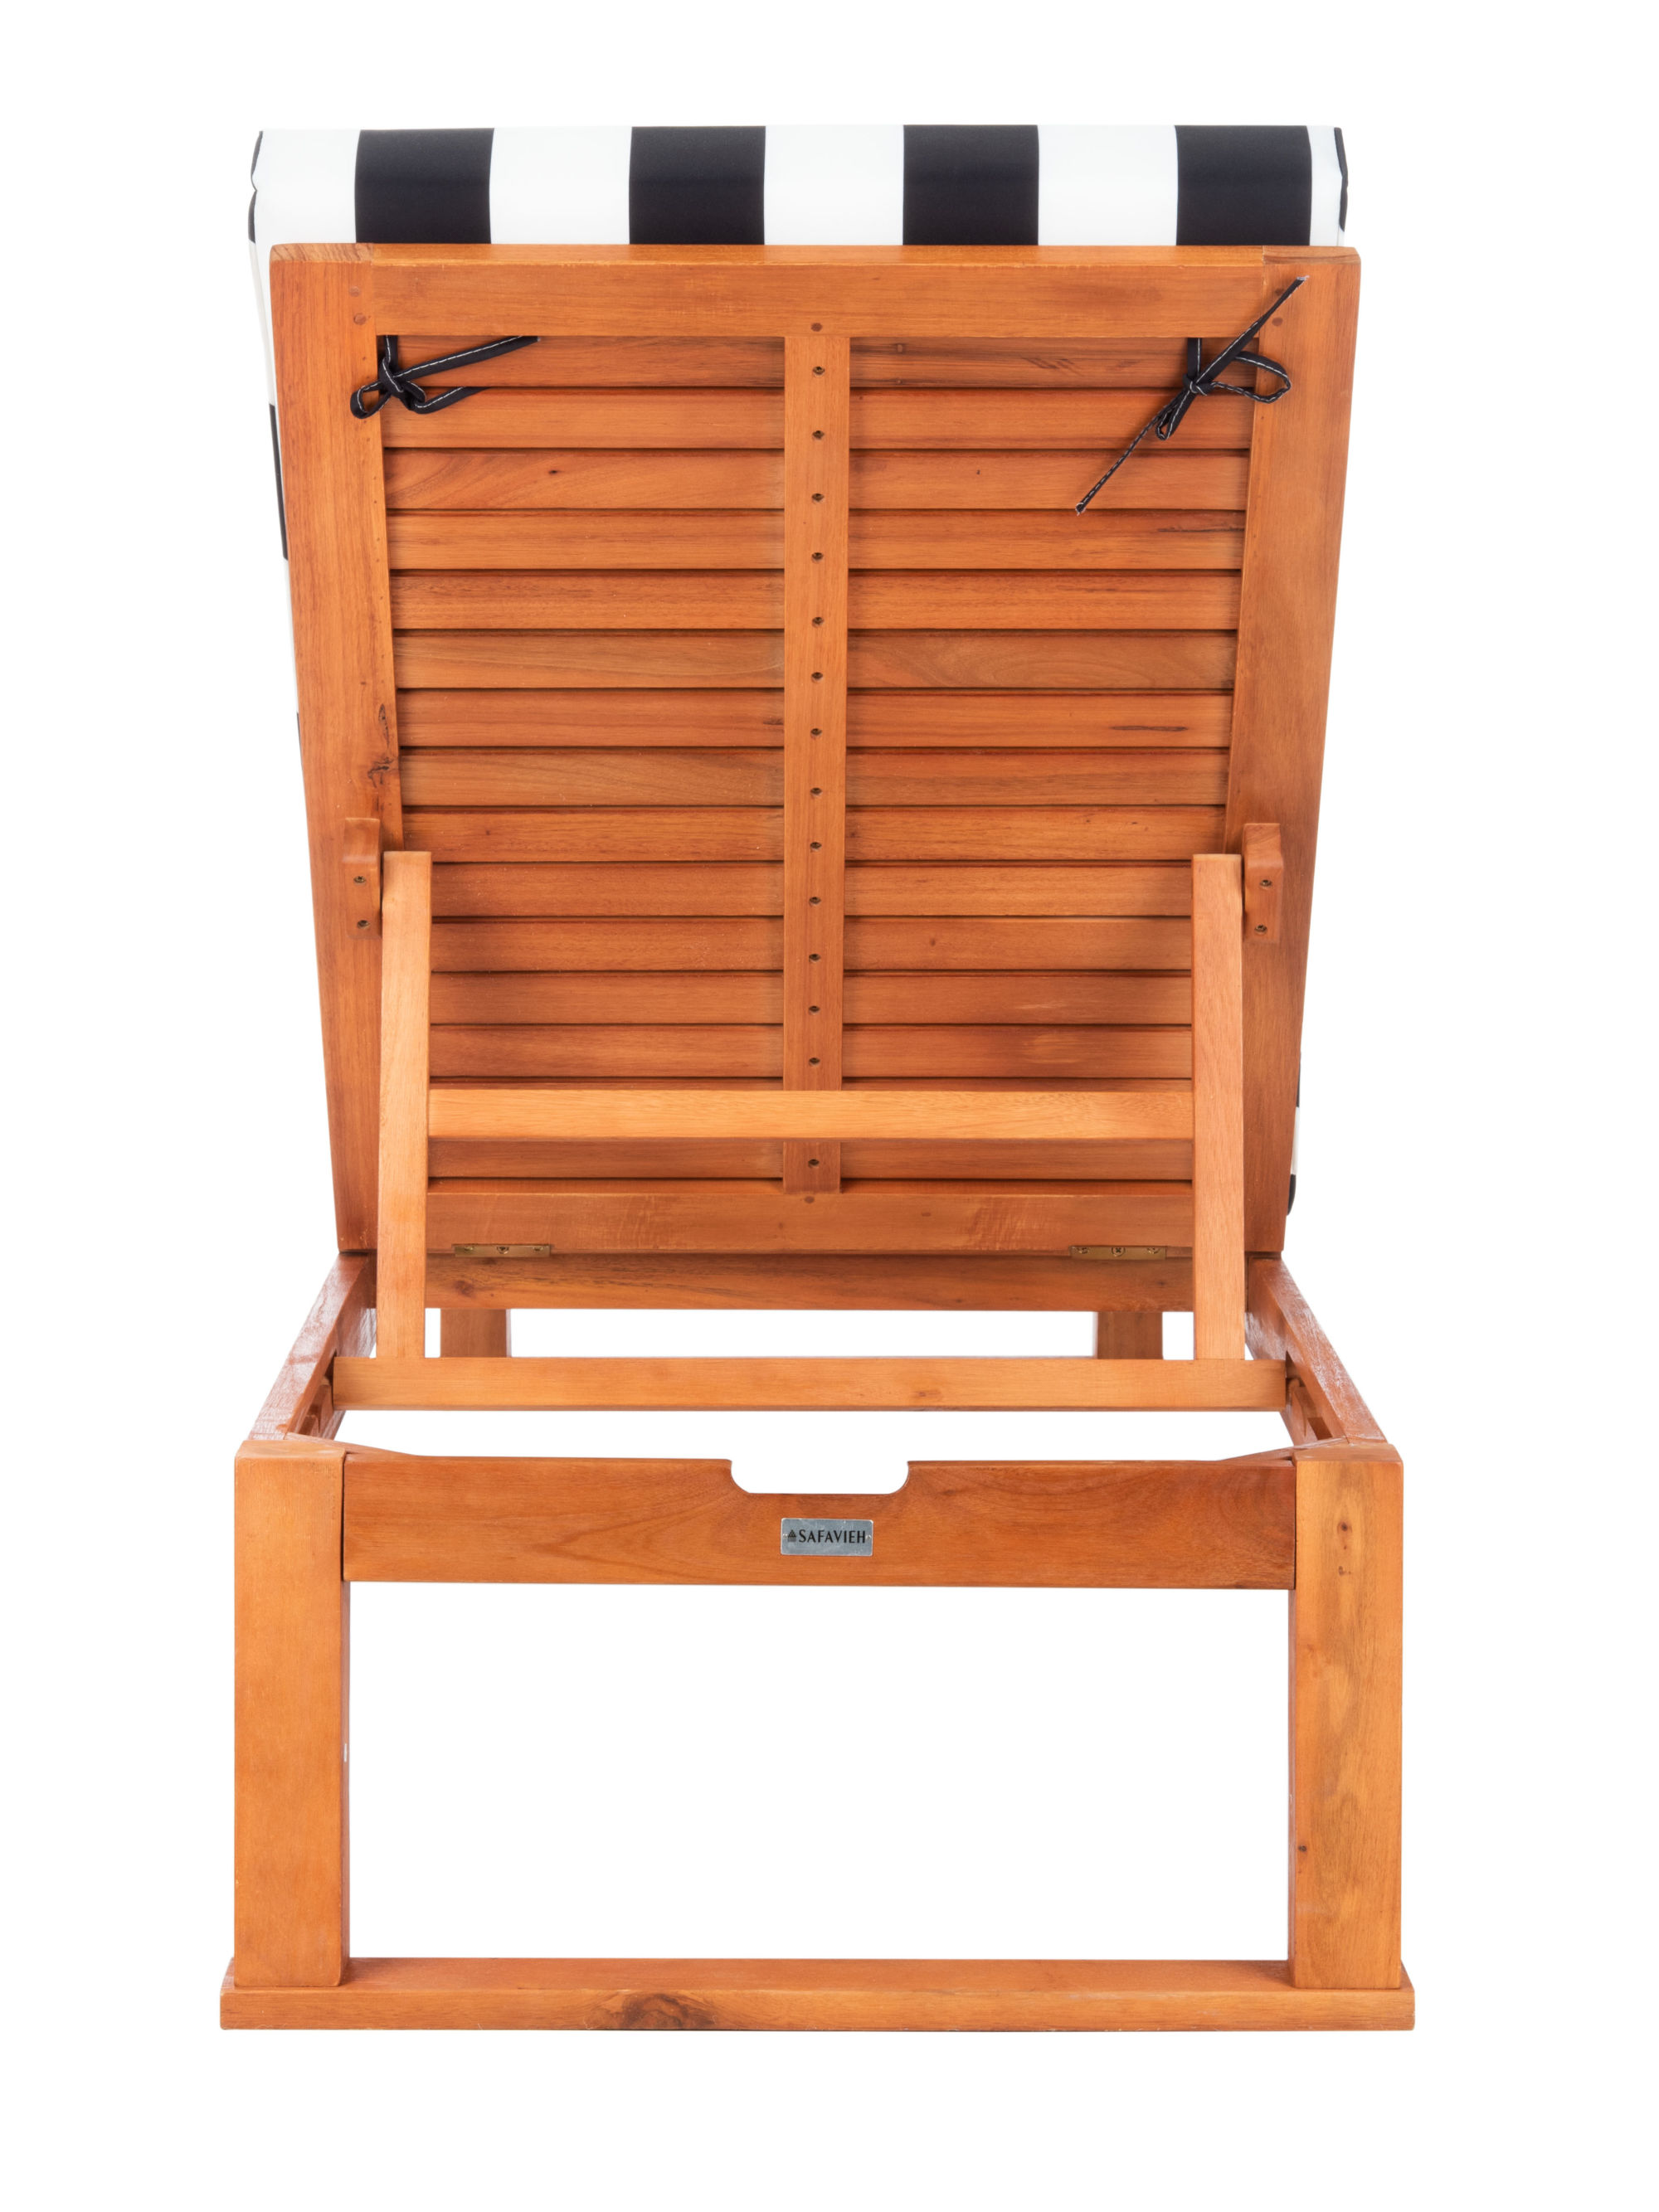 Solano Sunlounger on Safavieh Outdoor Living Solano Sunlounger id=49628